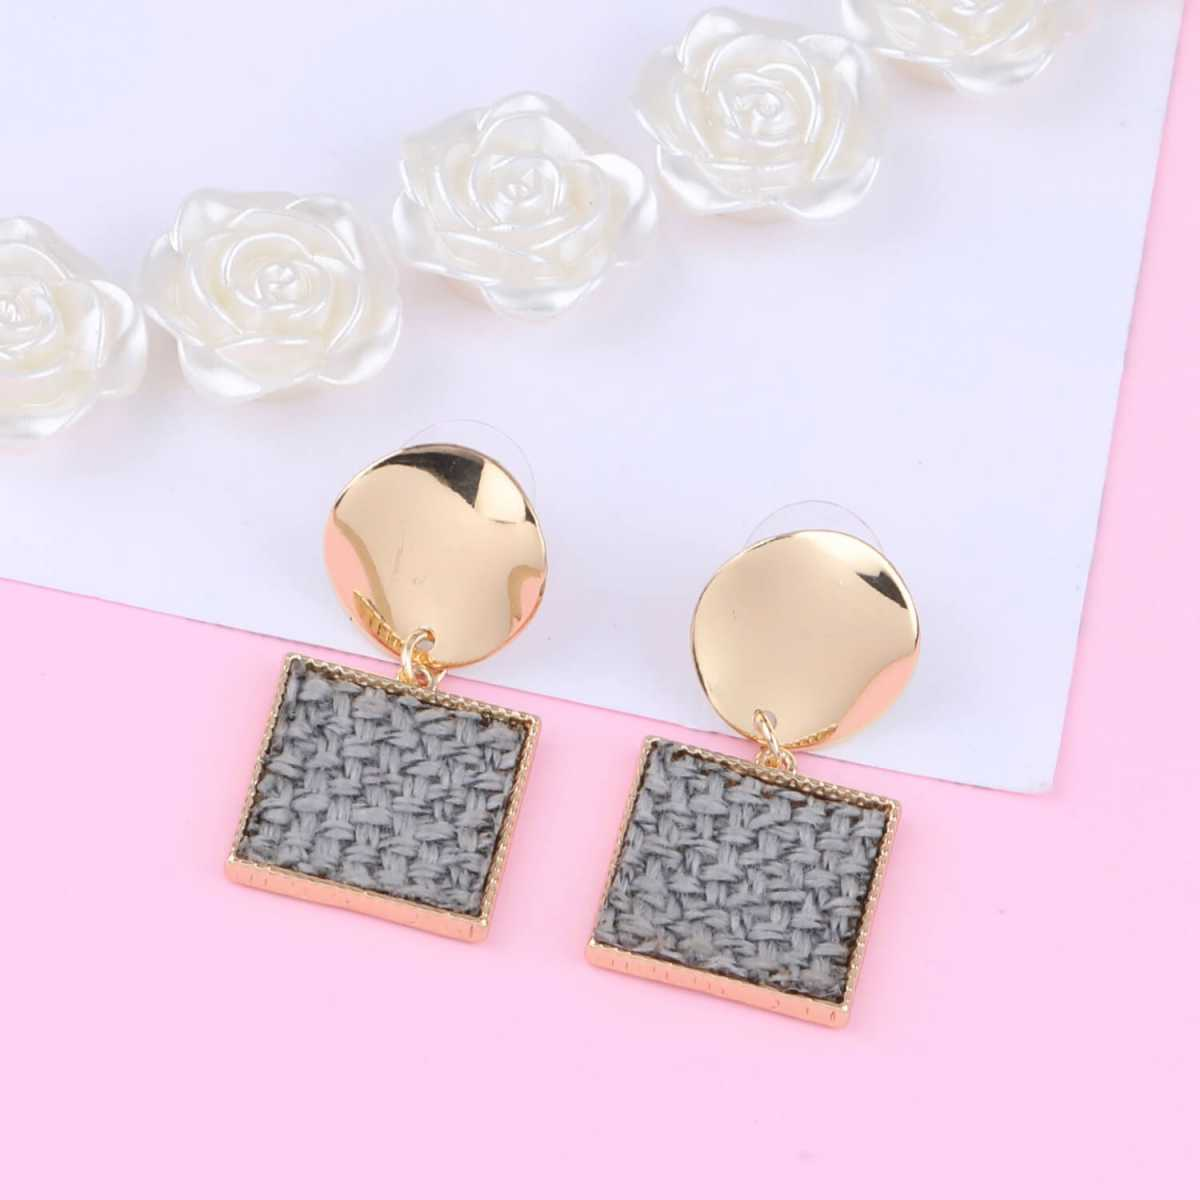 SILVER SHINE Gold Plated Charm Designer Earring For Women Girl